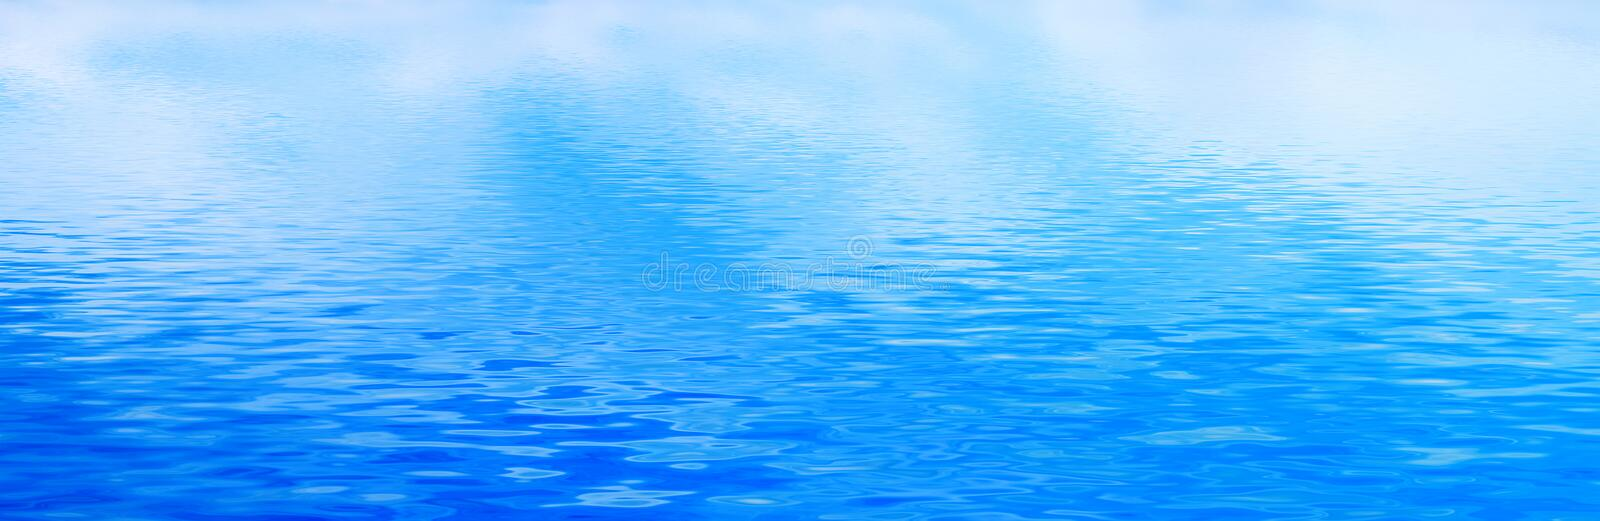 Clean water background, calm waves. Banner, panorama royalty free stock photos